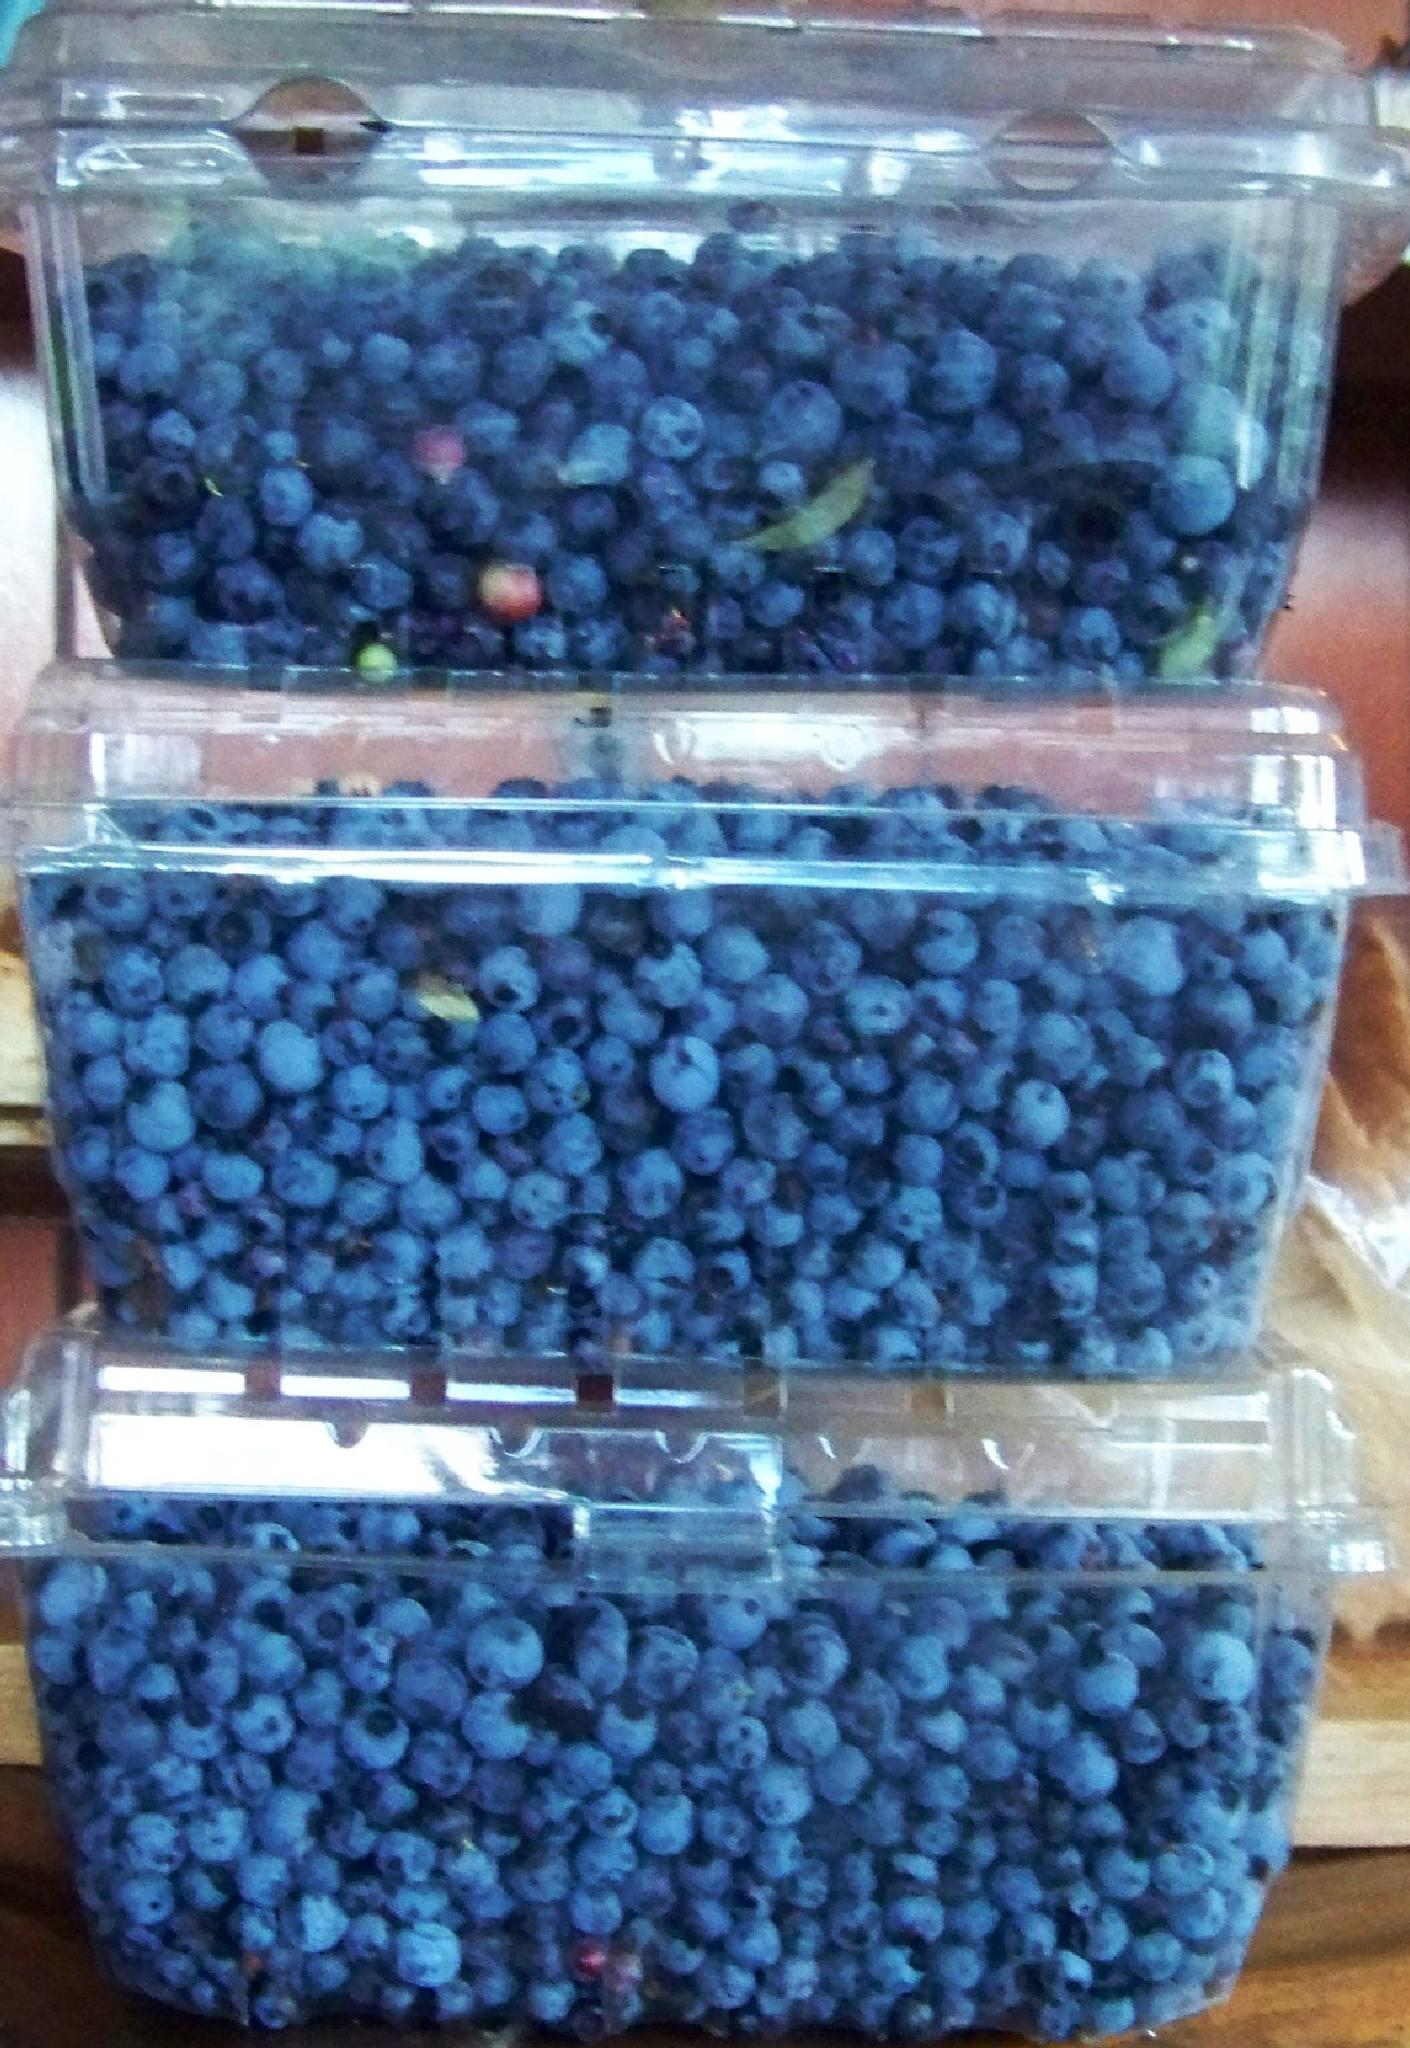 Blueberries picked by me for my pies and treats by kbgarvey